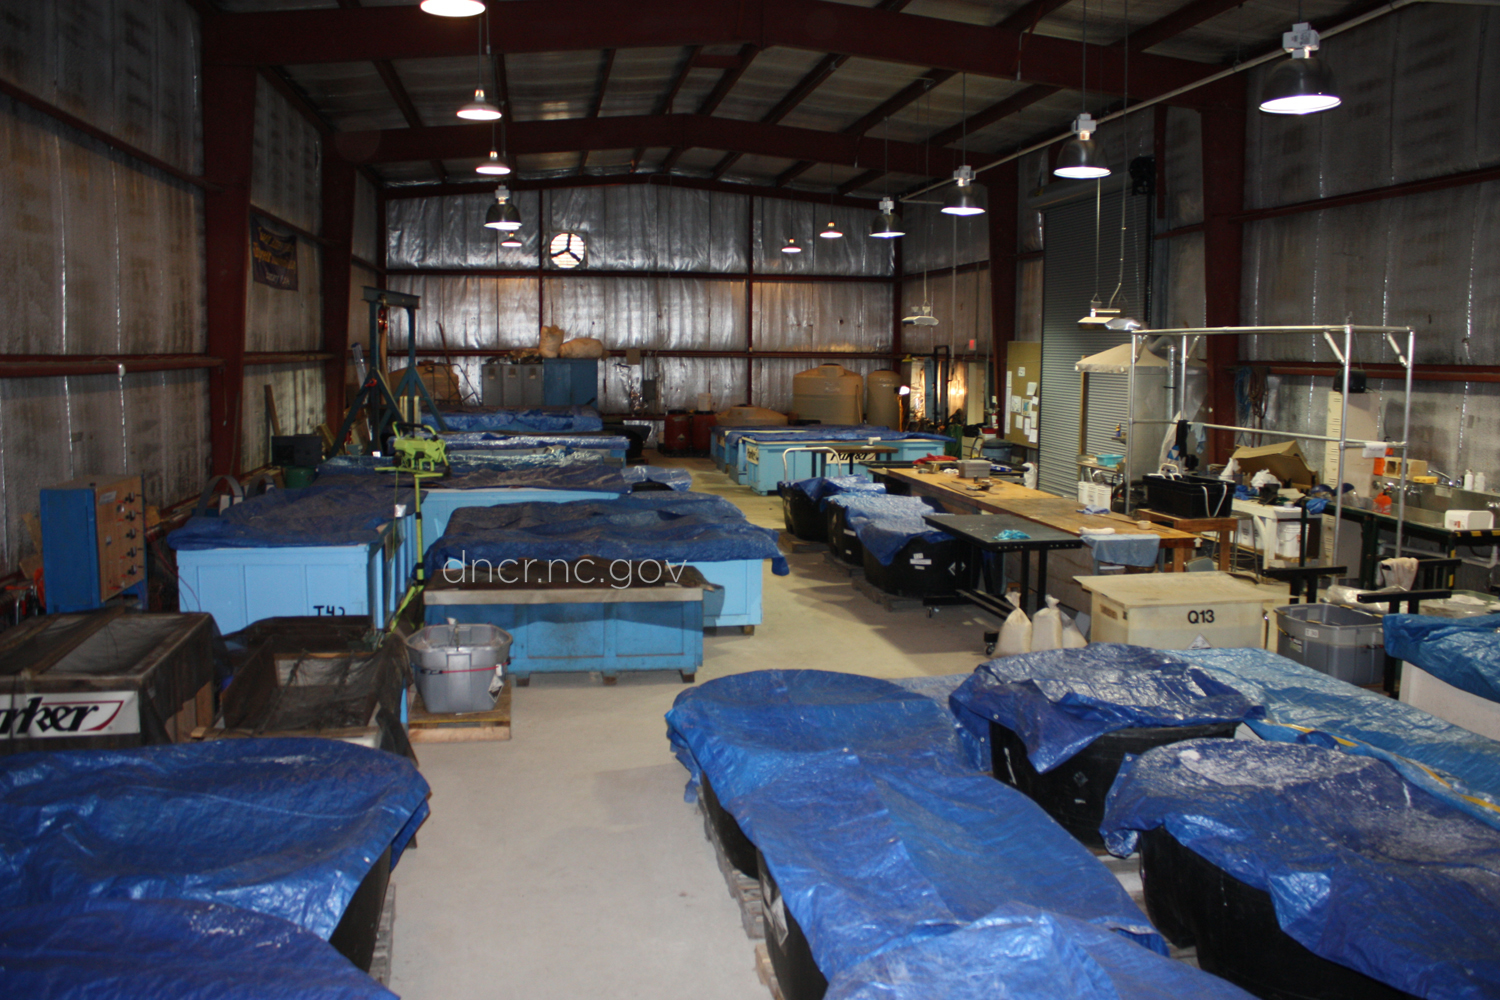 The warehouse where artifacts from Blackbeard's ship are stroed